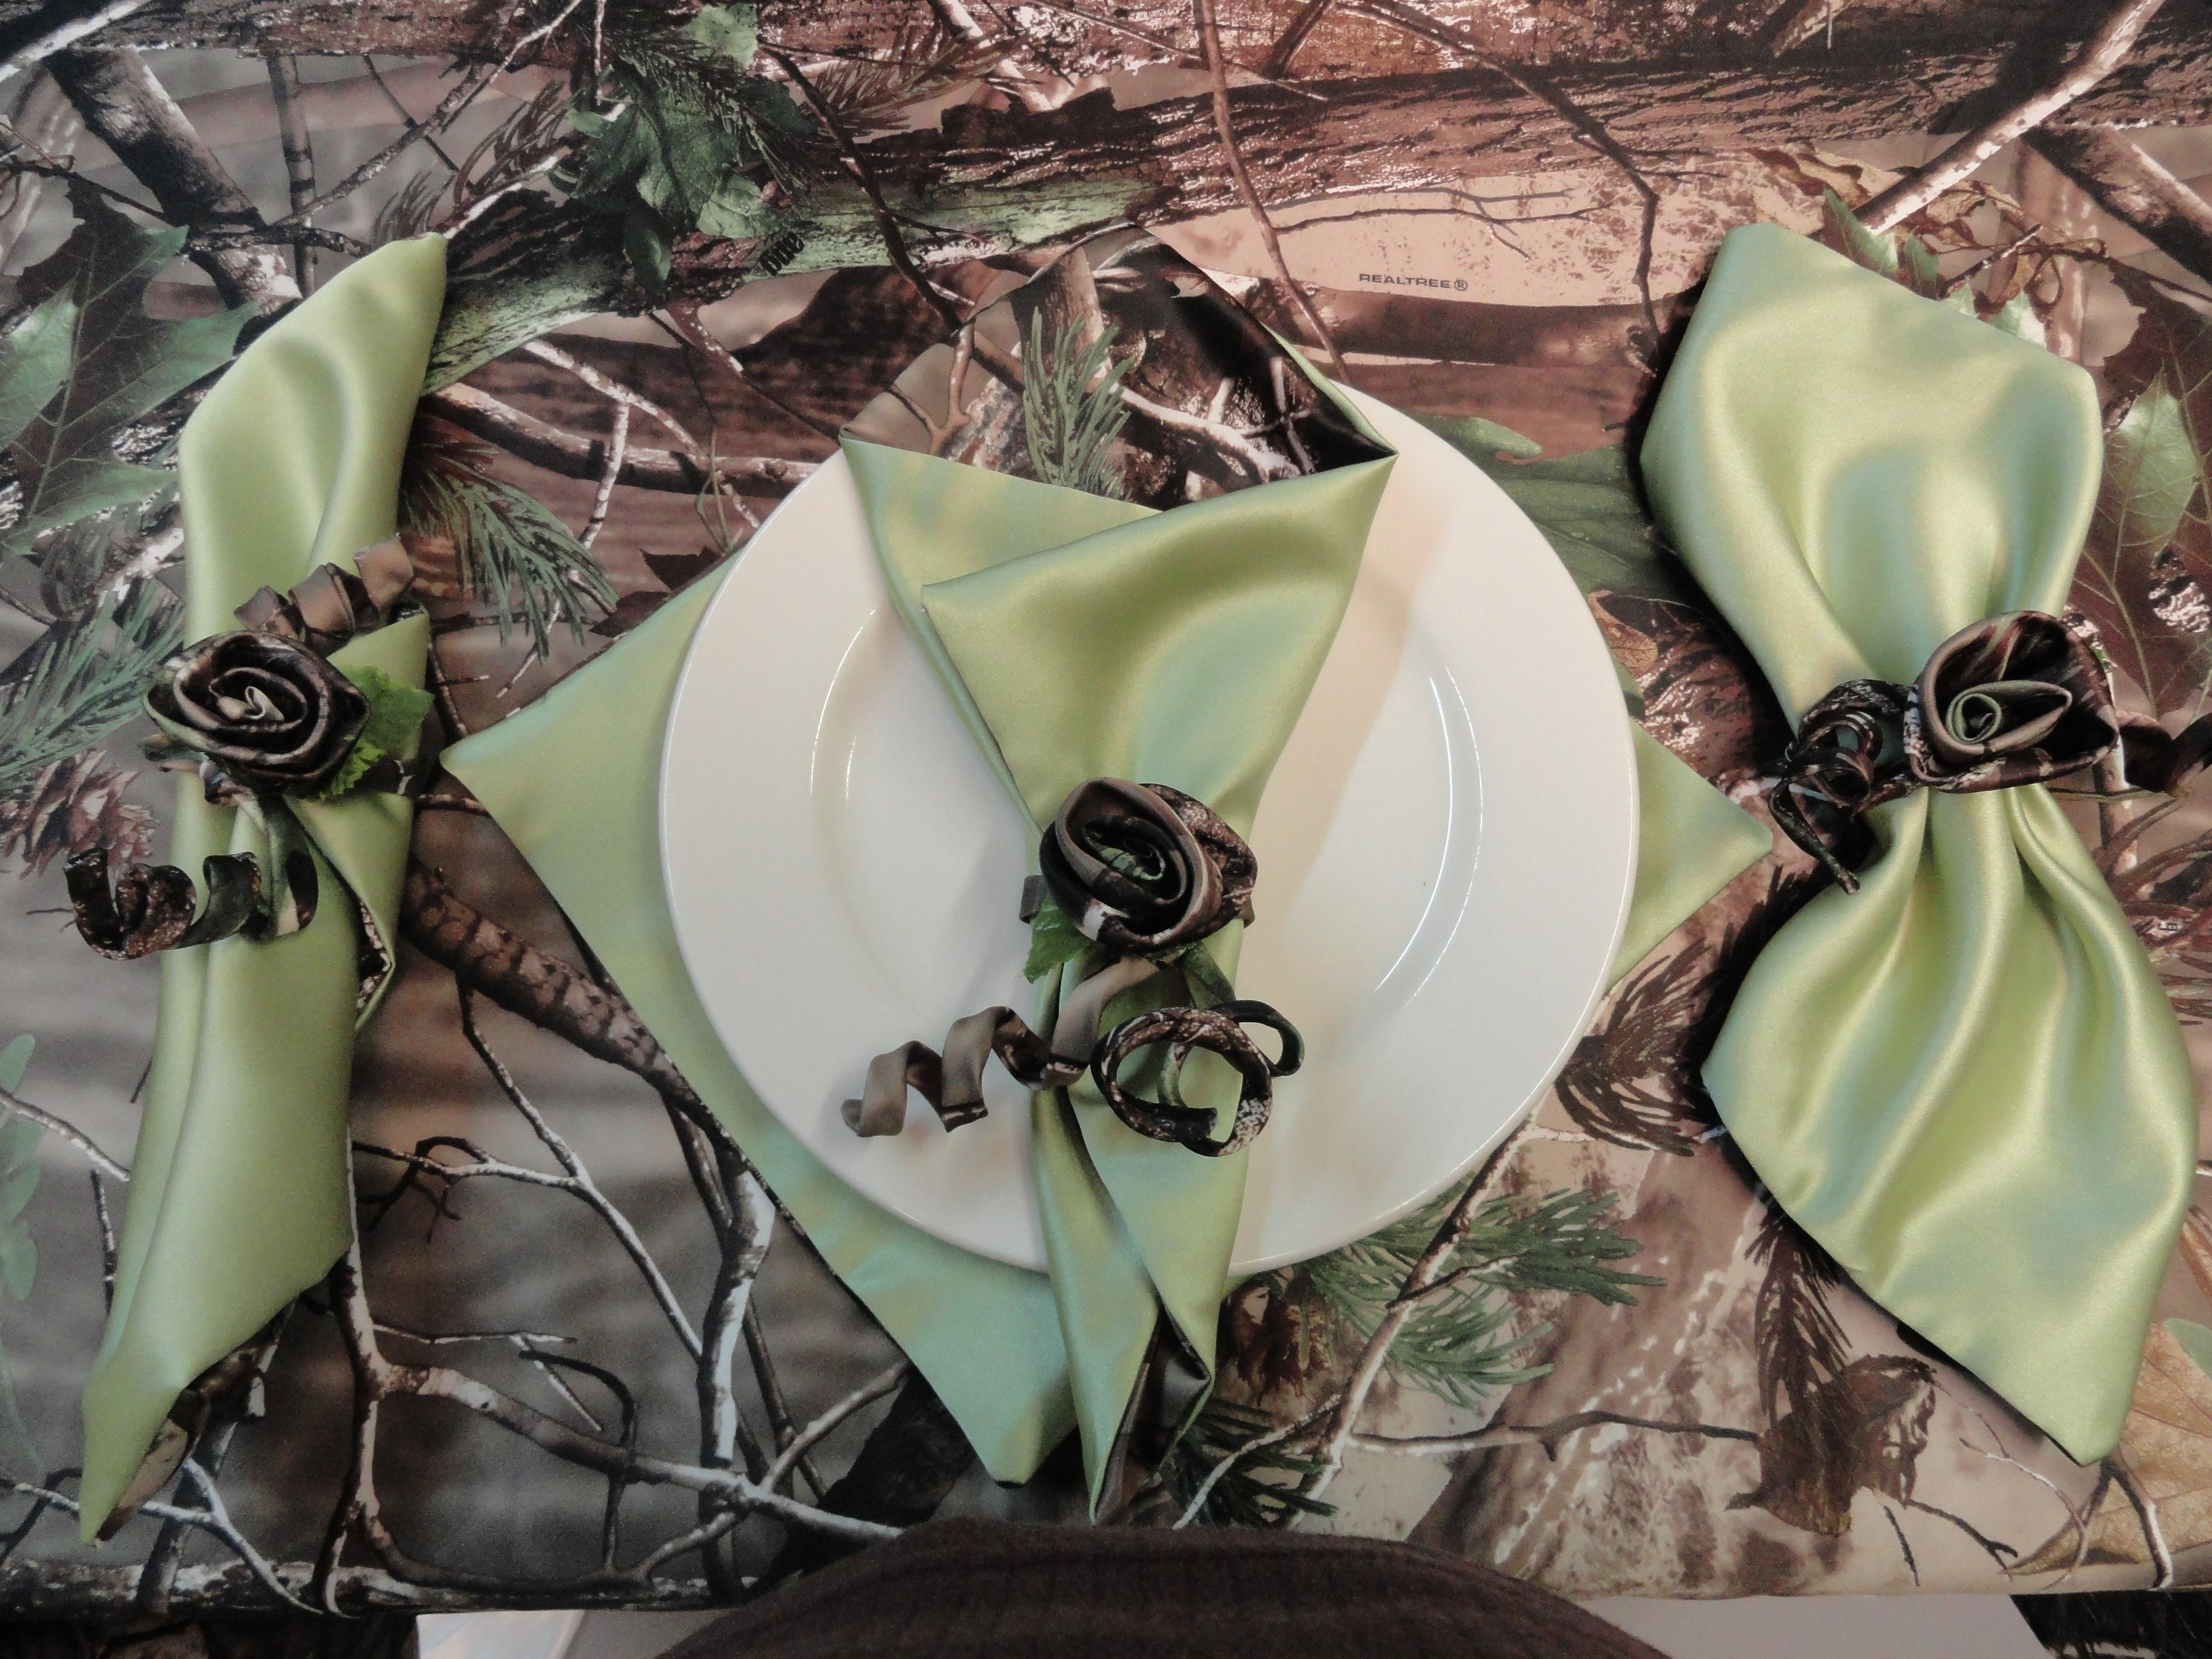 Mossy Oak Final Touches Camouflage Prom Wedding Home ing